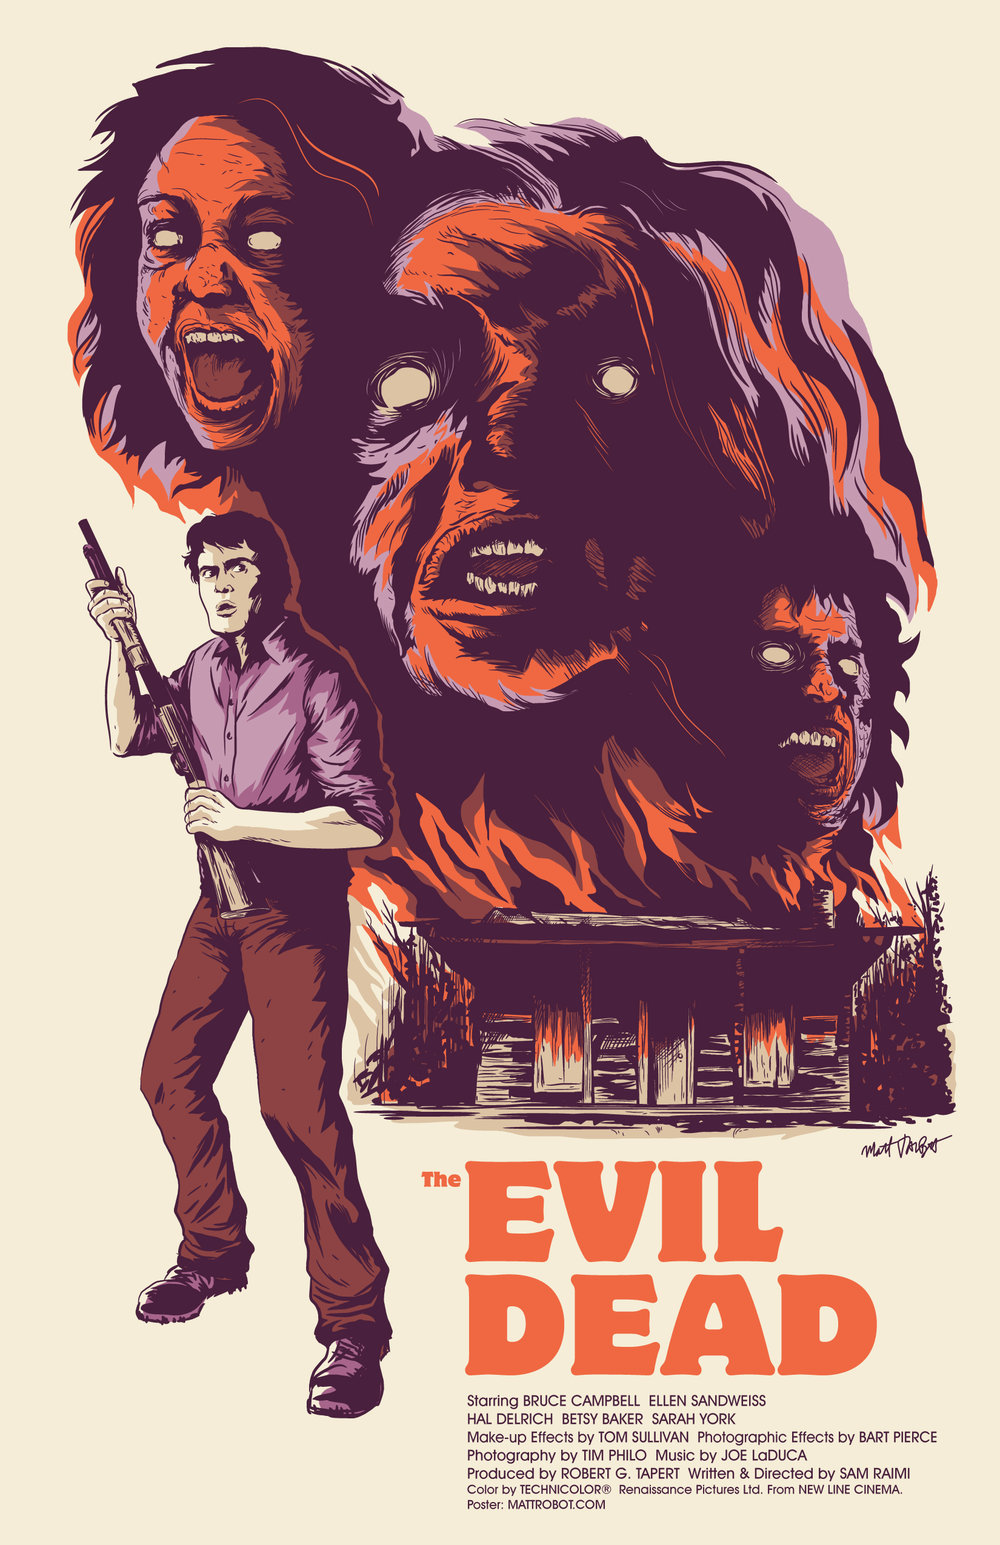 The Evil Dead Poster by Matt Talbot